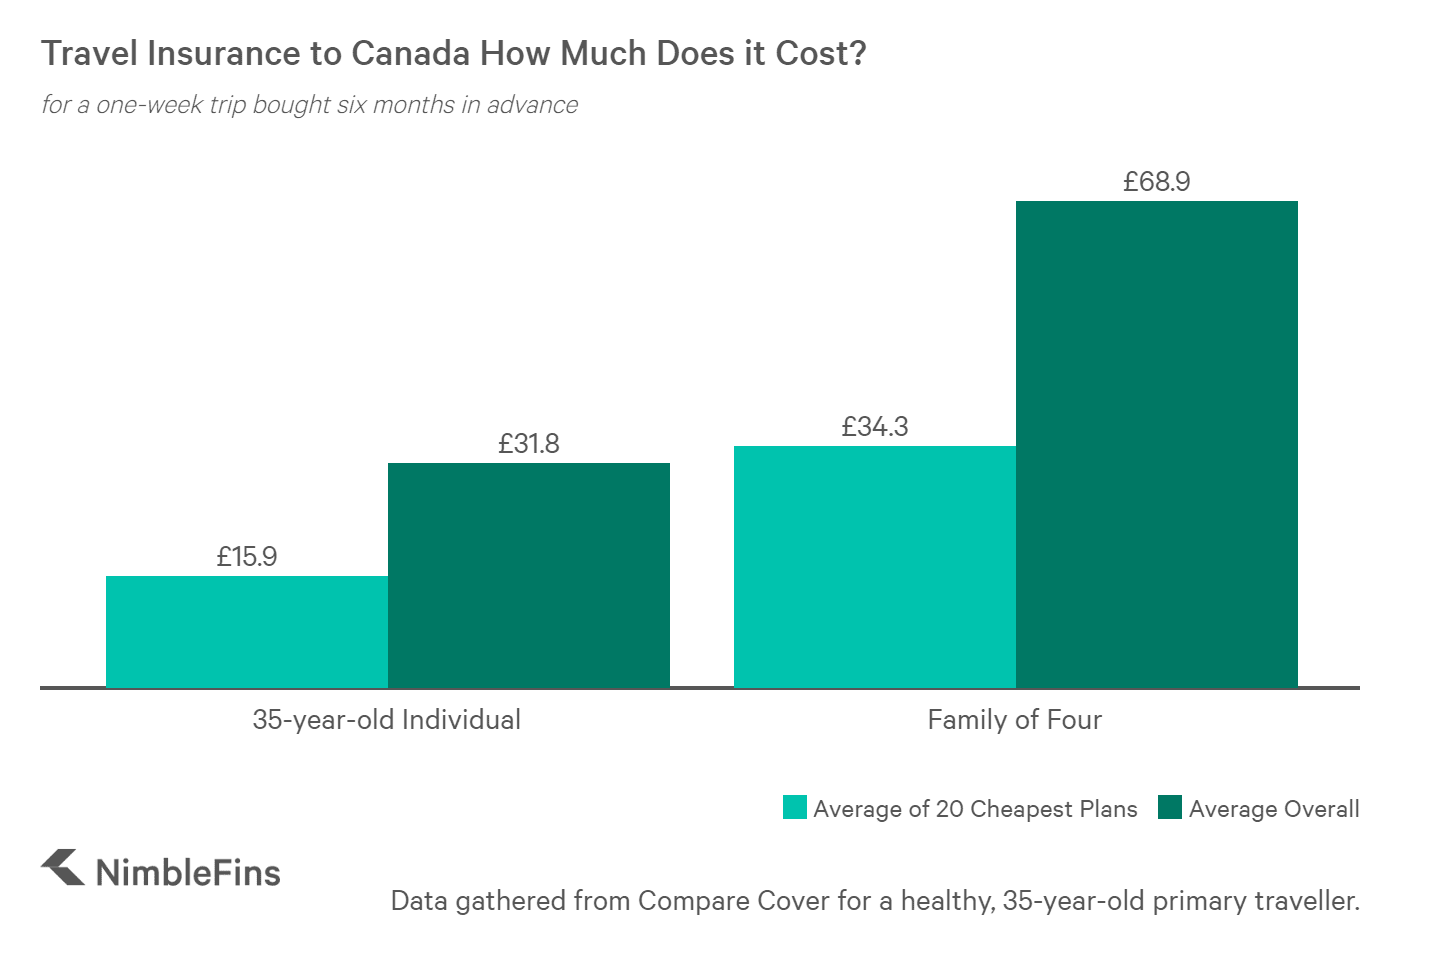 chart of average cost of travel insurance from UK to Canada for individual and family